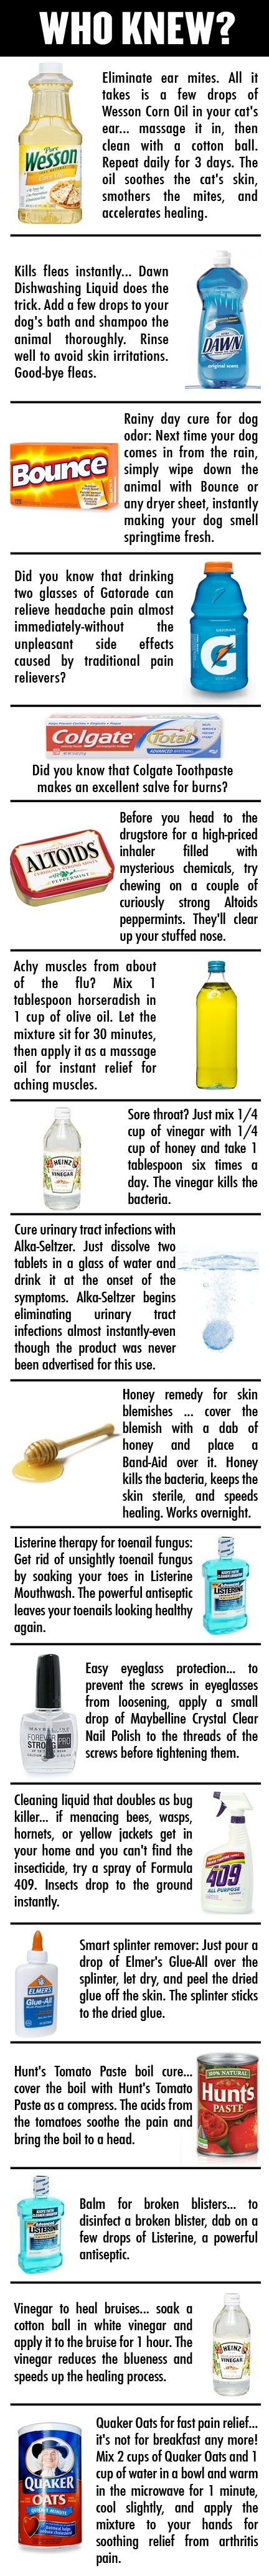 DIY remedies.